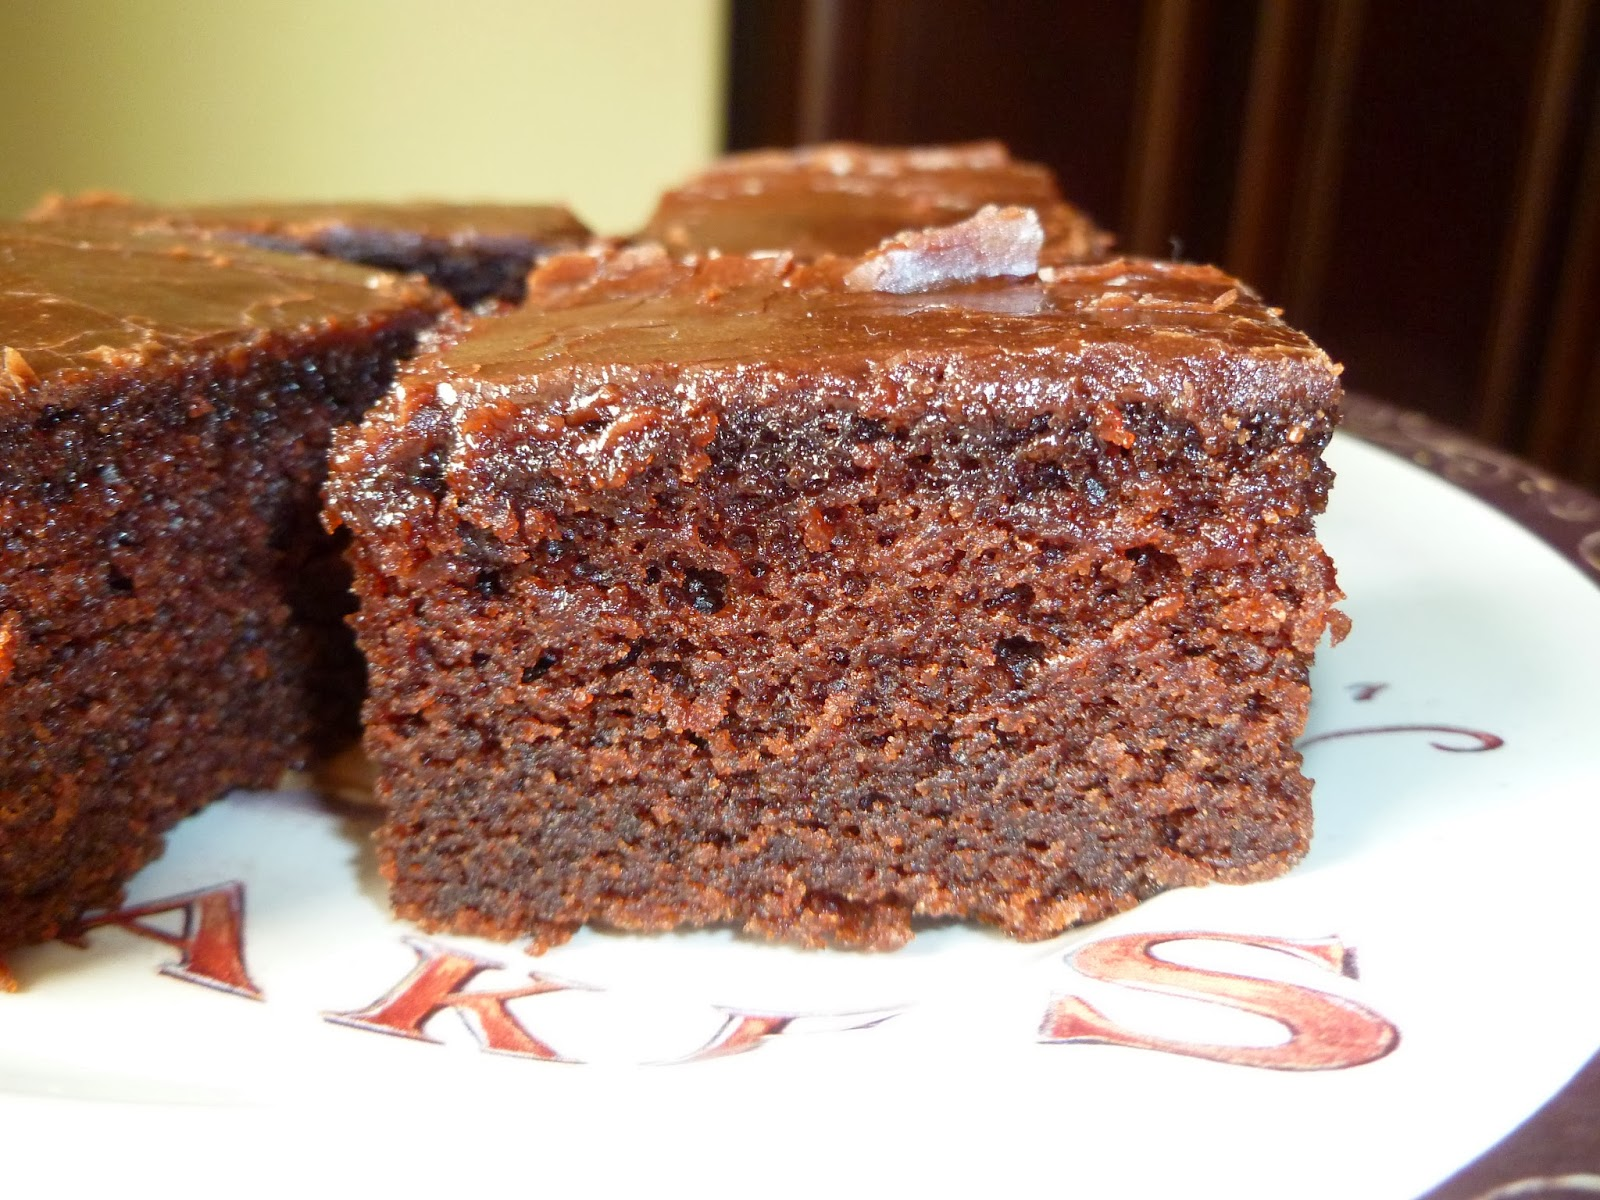 The Pastry Chef's Baking: Texas Sheet Cake - Happy National ...